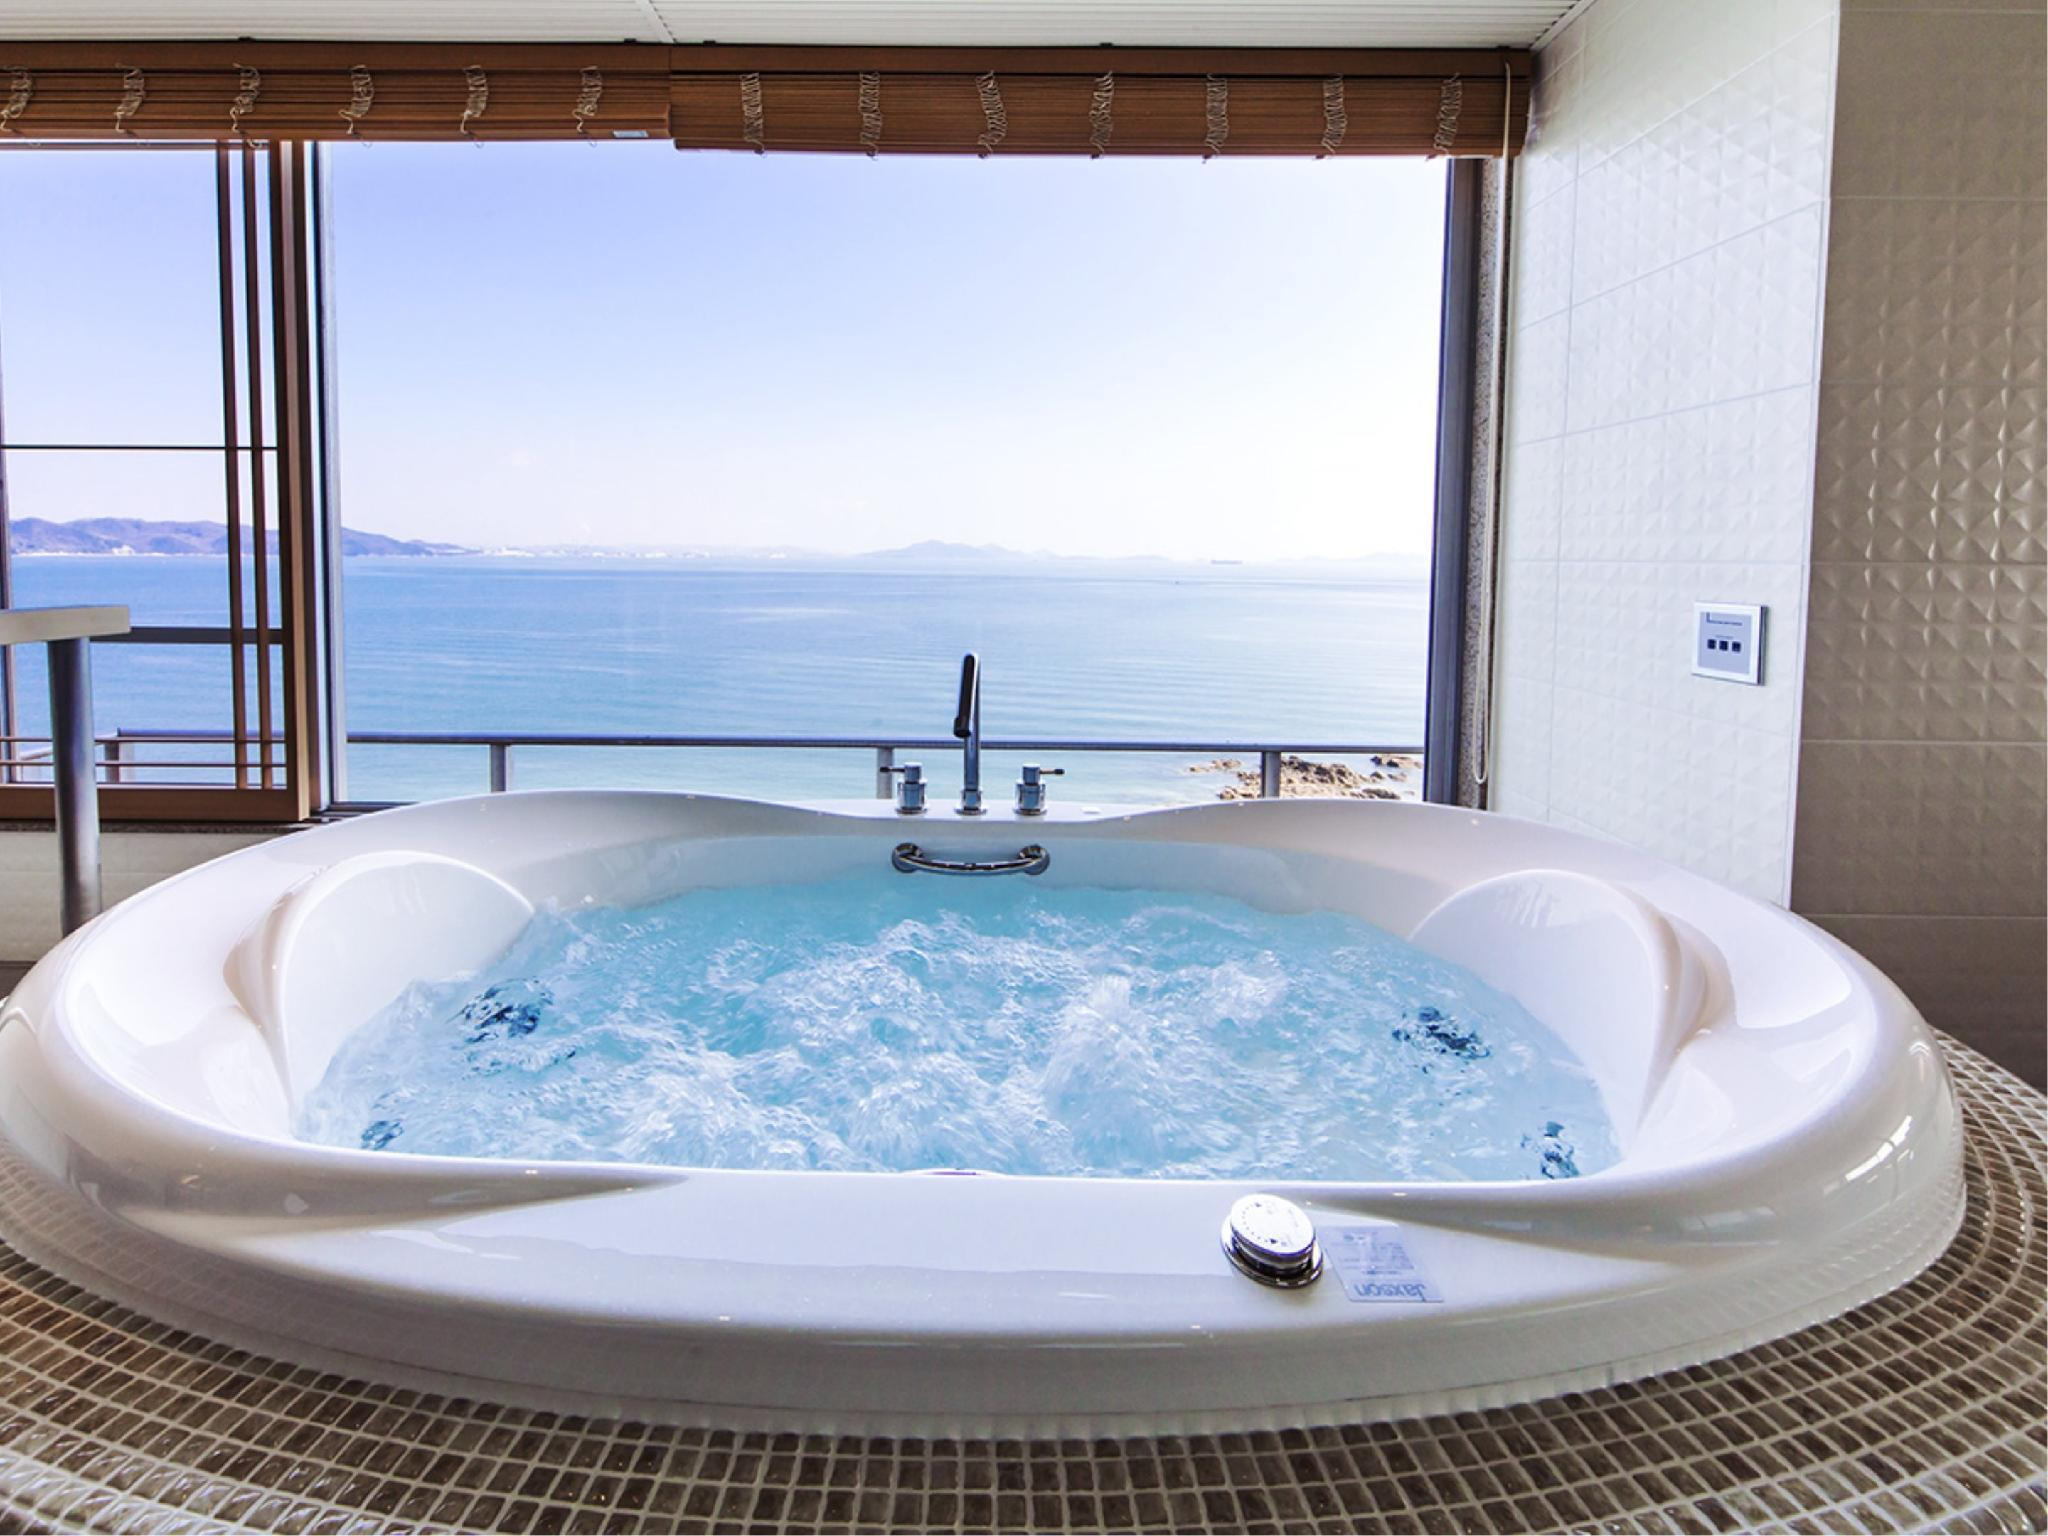 按摩浴缸觀景盆浴套房 (Suite with Scenic View Bath & Jacuzzi)